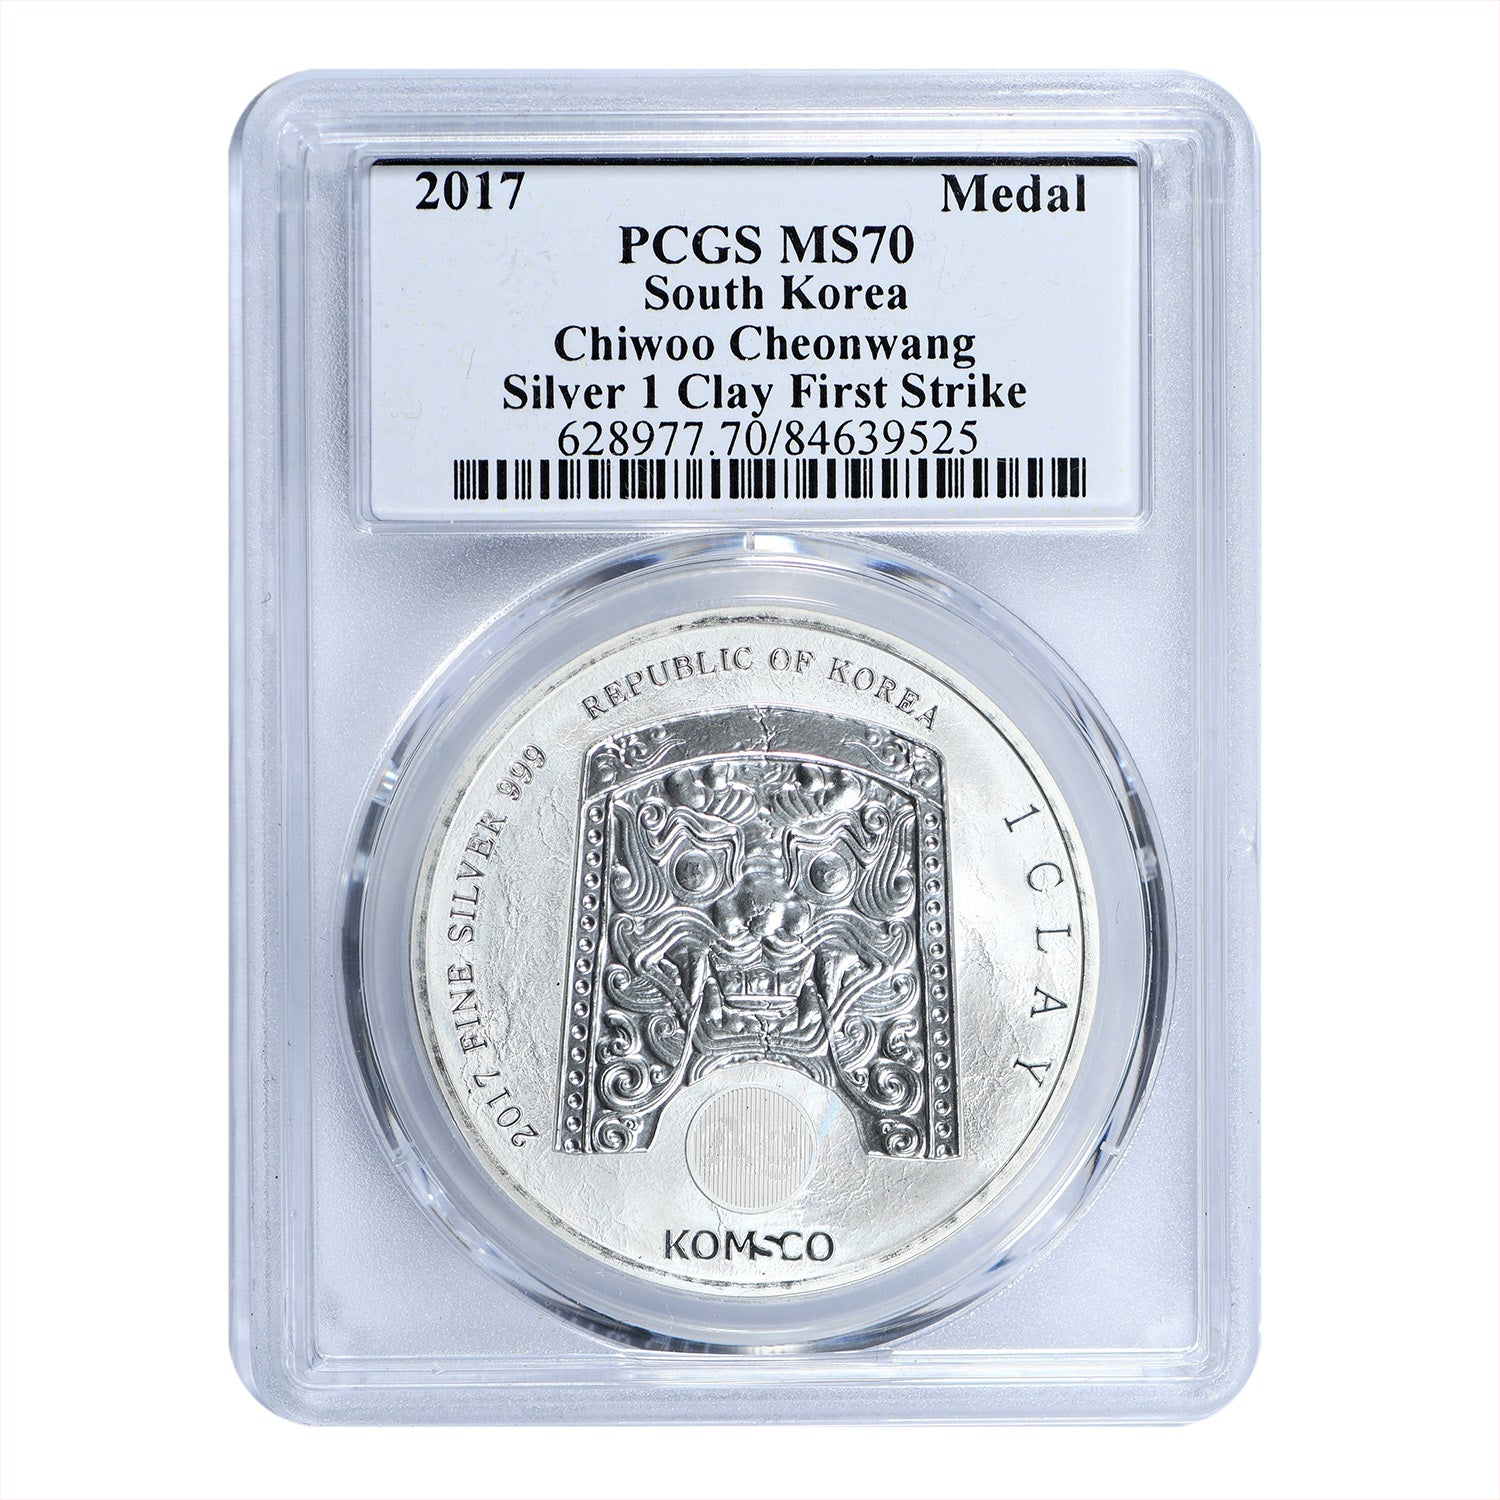 2017 South Korea 1 Oz Silver Chiwoo Cheonwang First Strike PCGS MS70